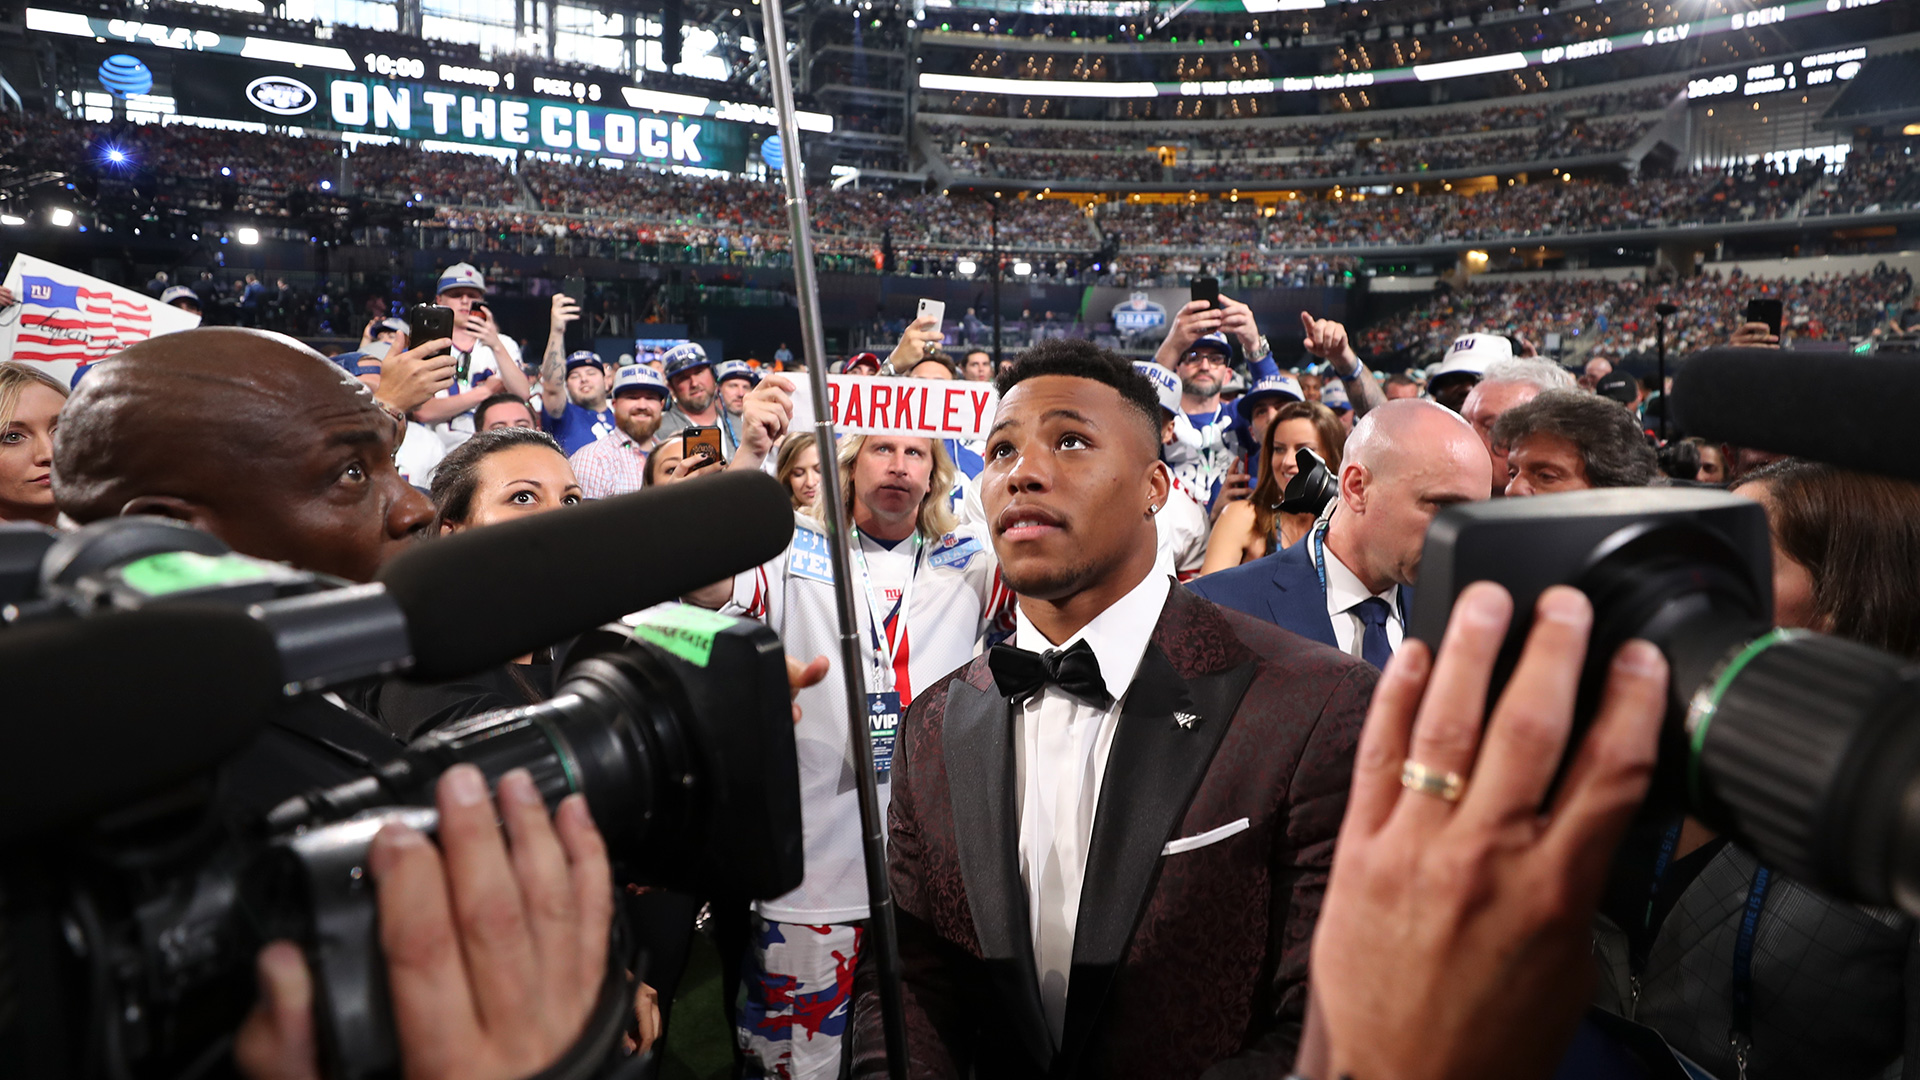 Penn State running back Saquon Barkley during the 2018 NFL Draft on Thursday, April 26, 2018 in Arlington, Texas. (Logan Bowles/NFL)